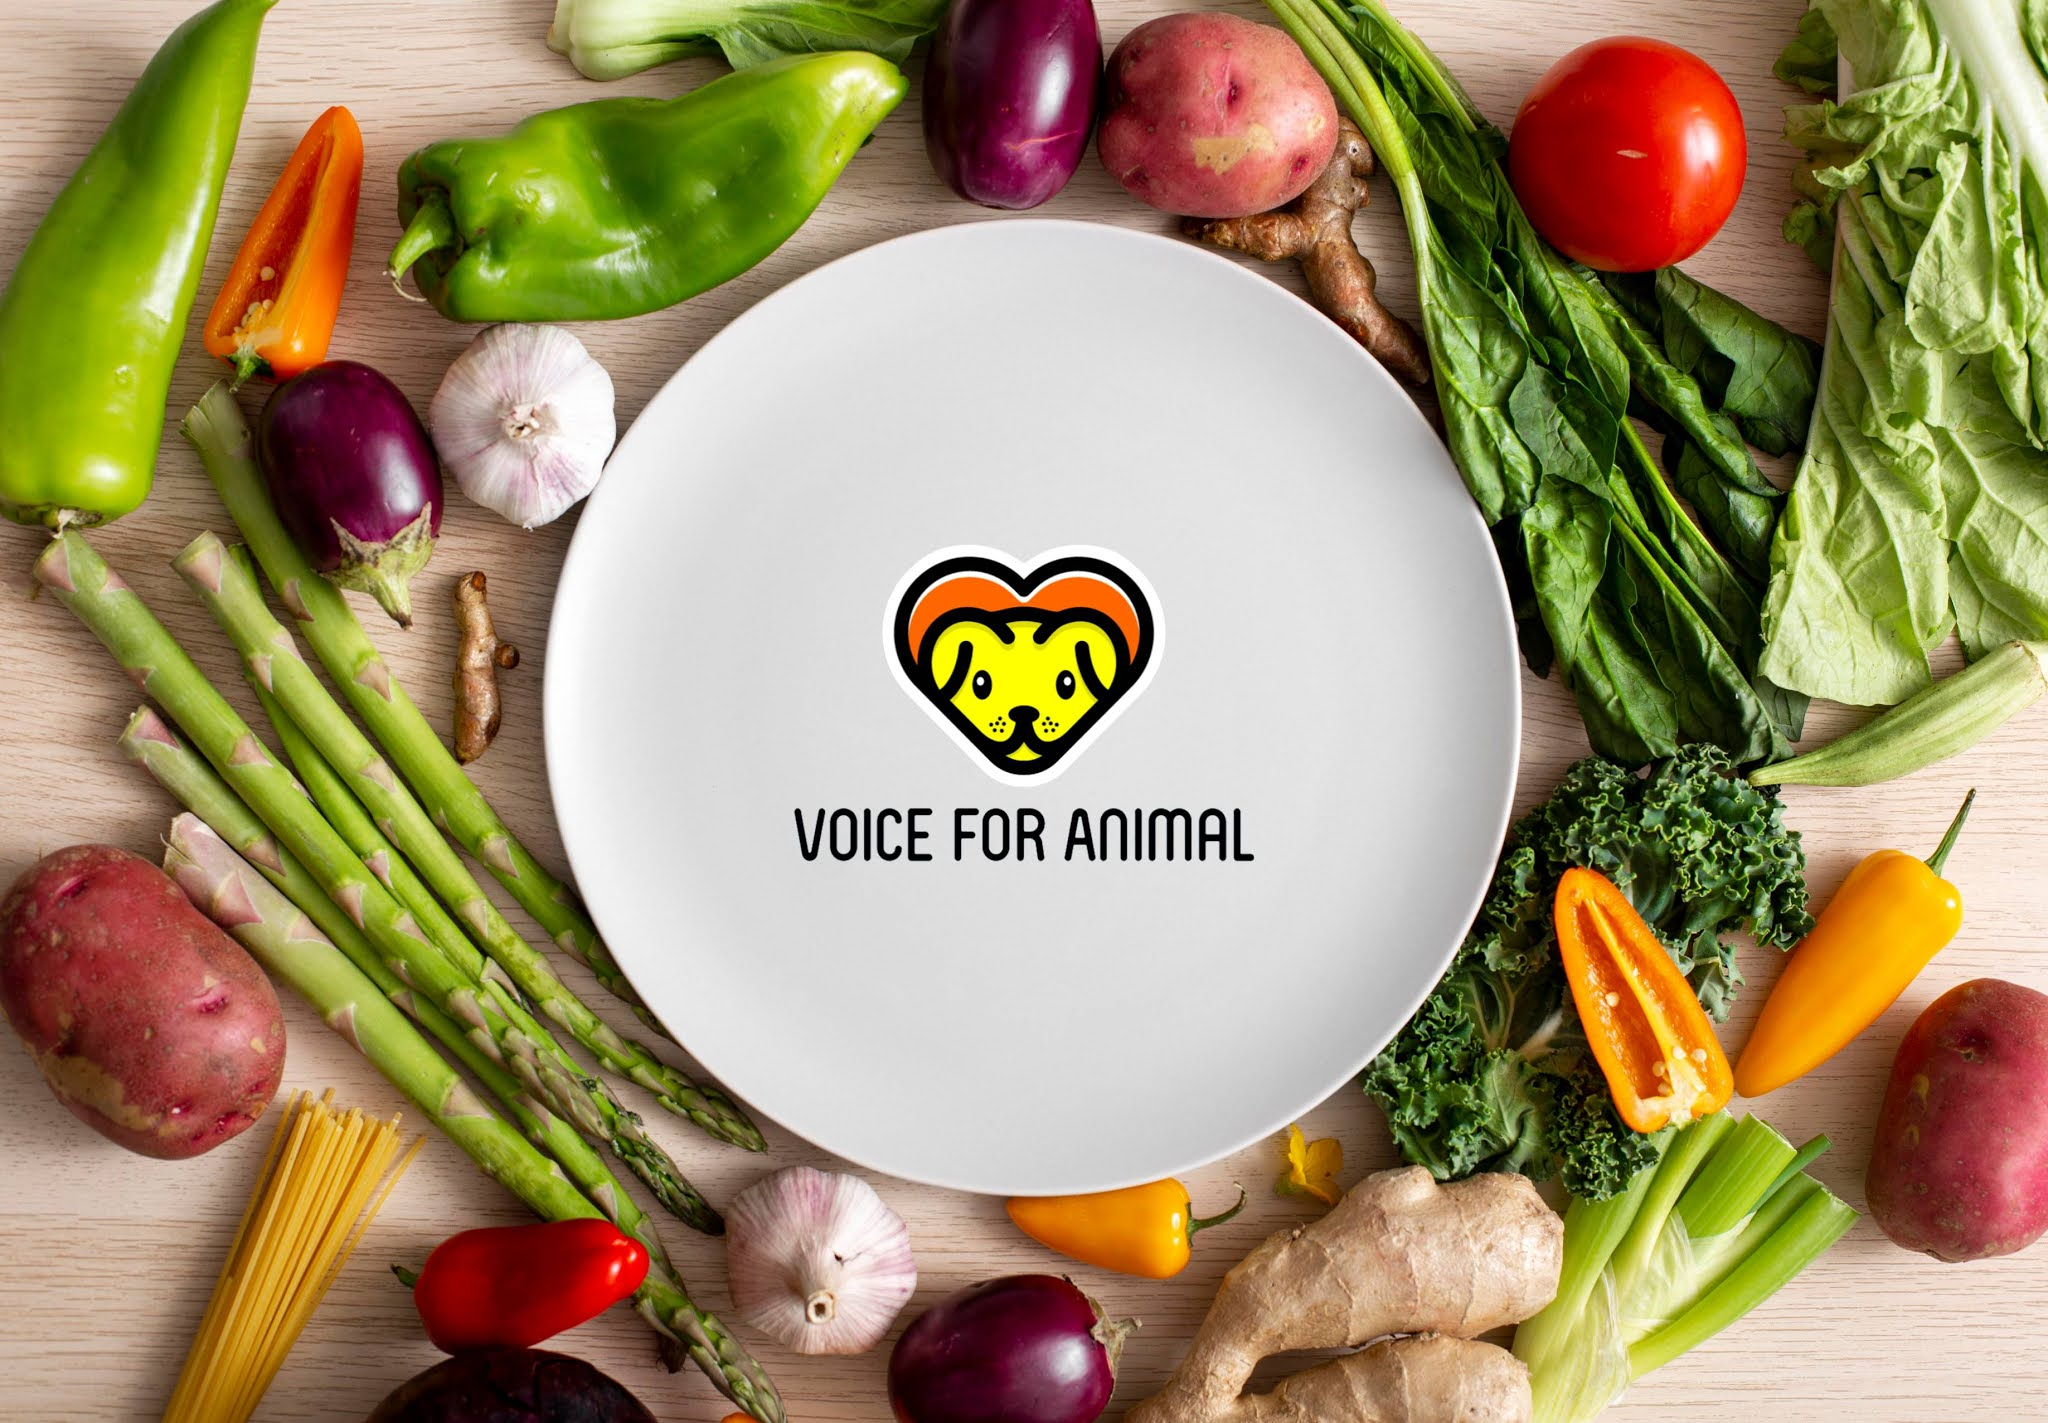 Vegetarians are two main types: those who include some animal products in their diet and those who do not. Usually the first is called vegetarian and the other is vegetarian